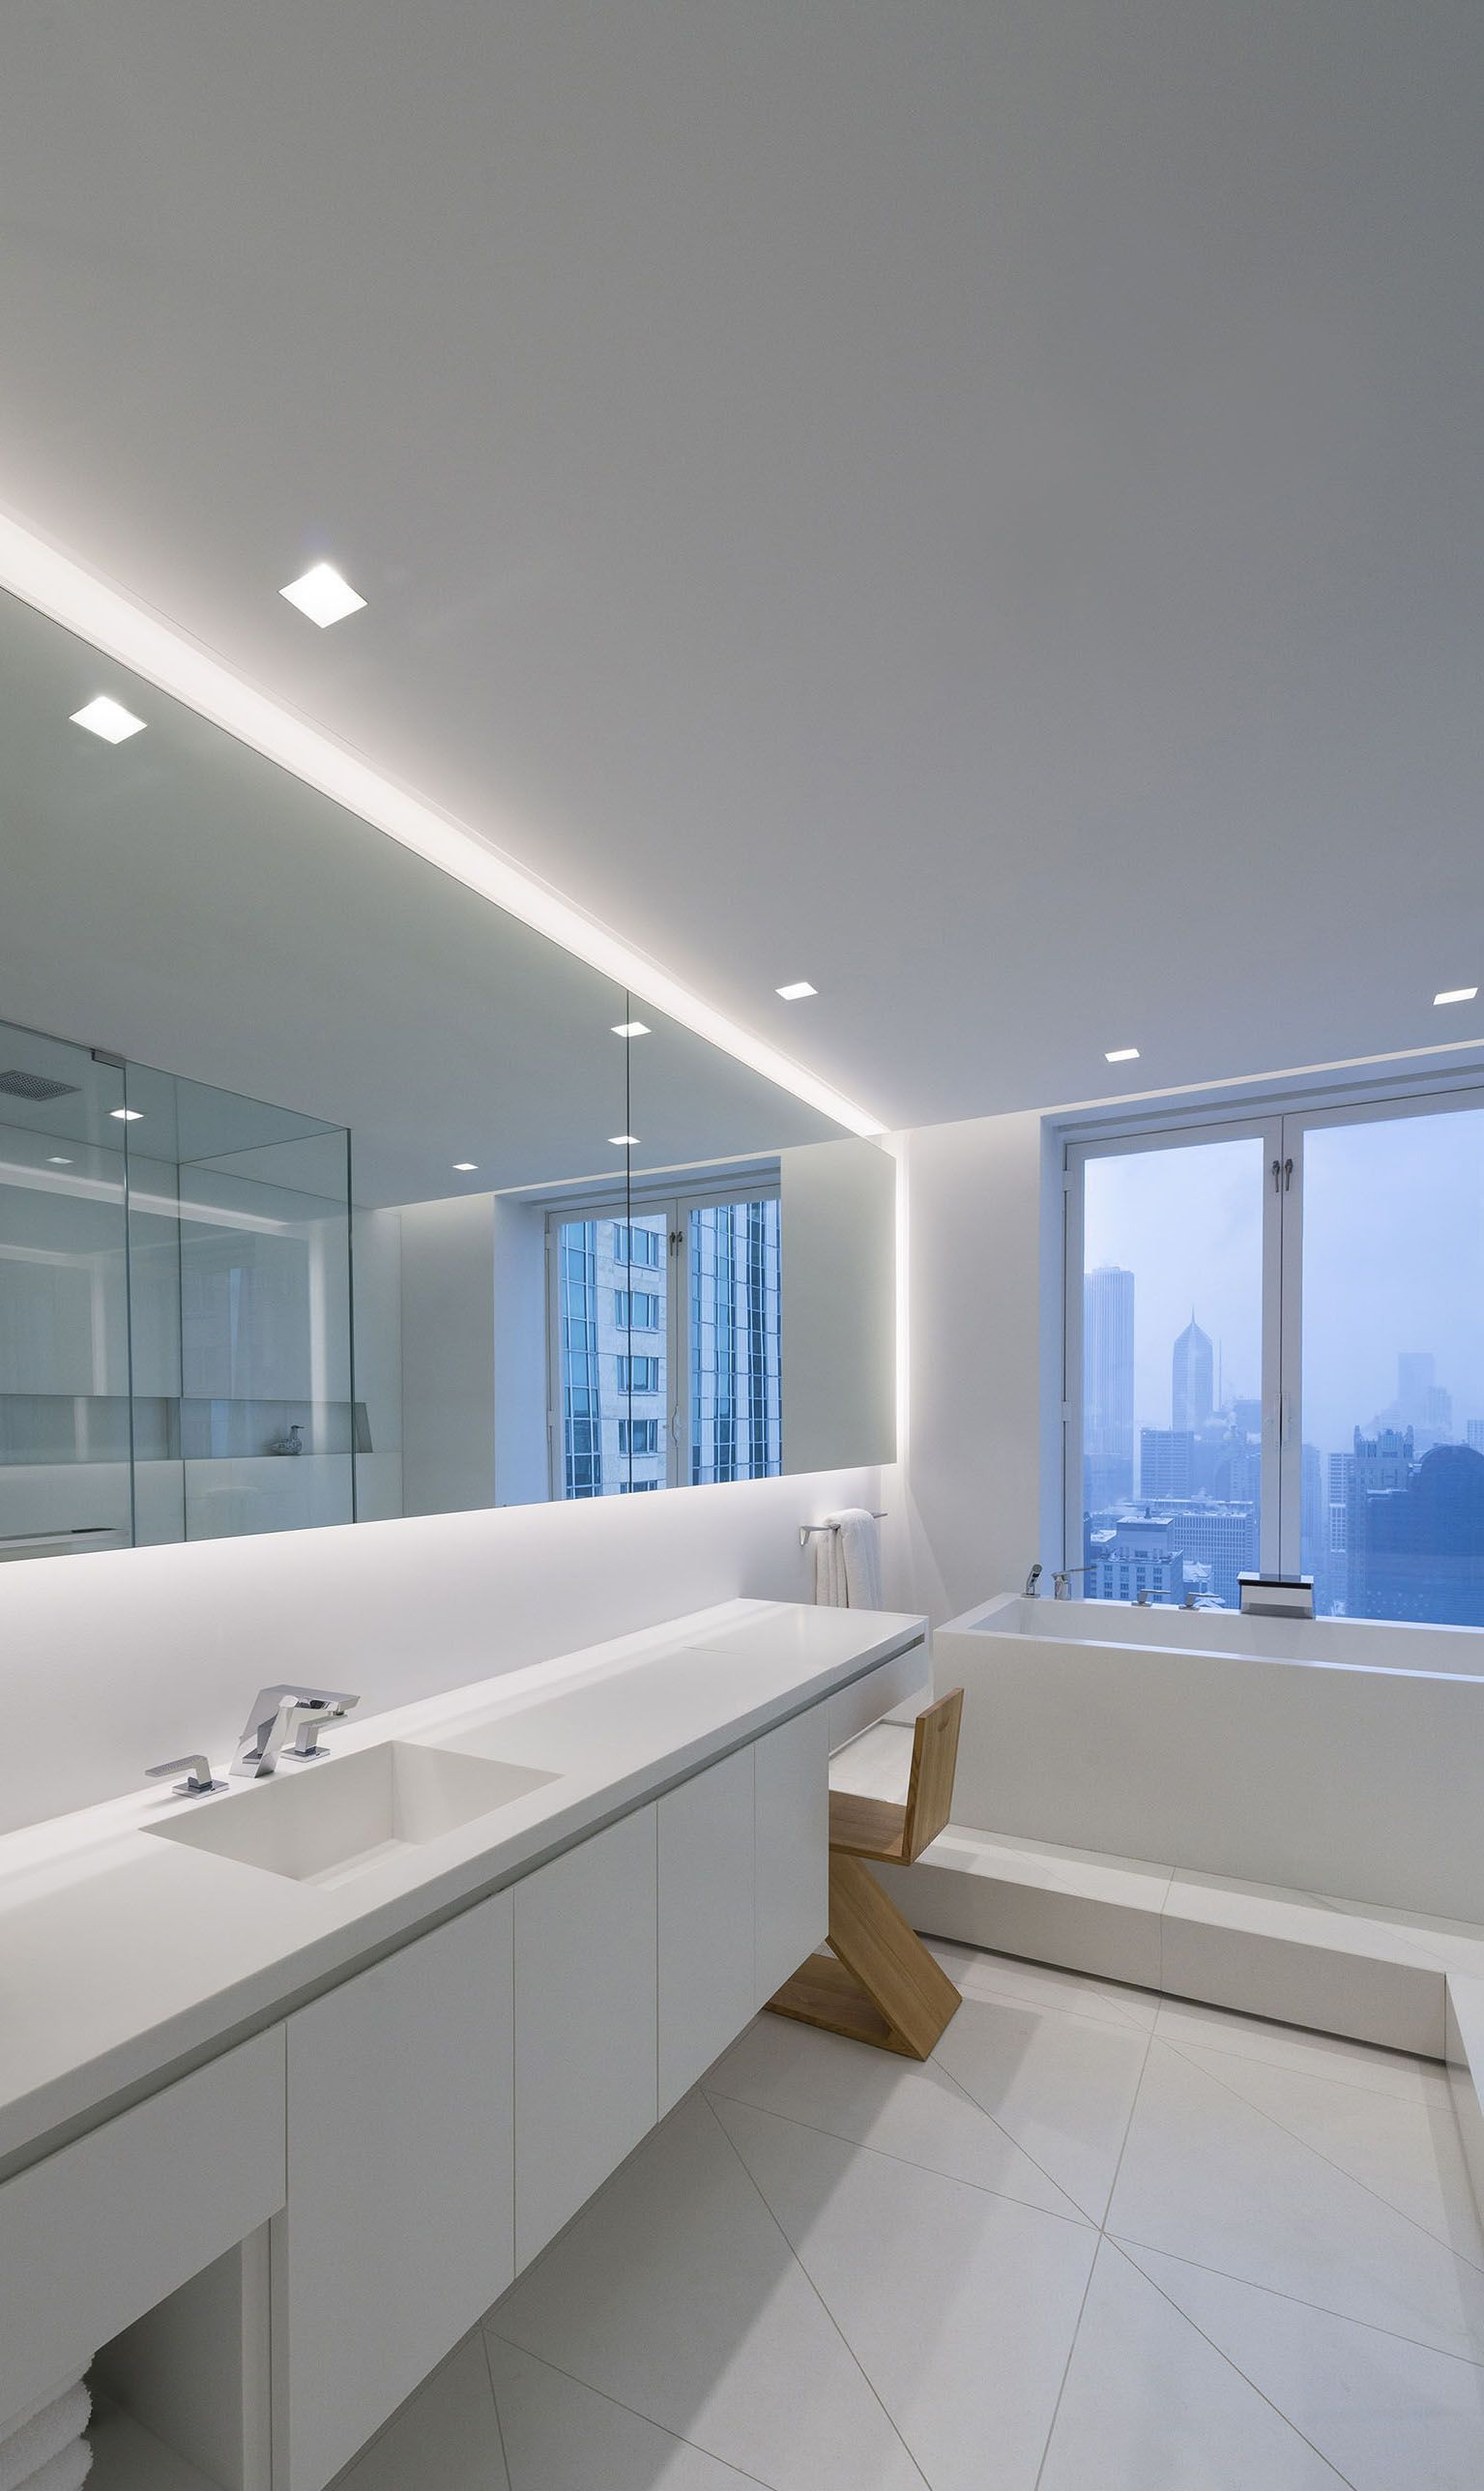 A Lighting Idea For Contempporary Bathrooms Modern Led Lighting For The Bathroom Aurora